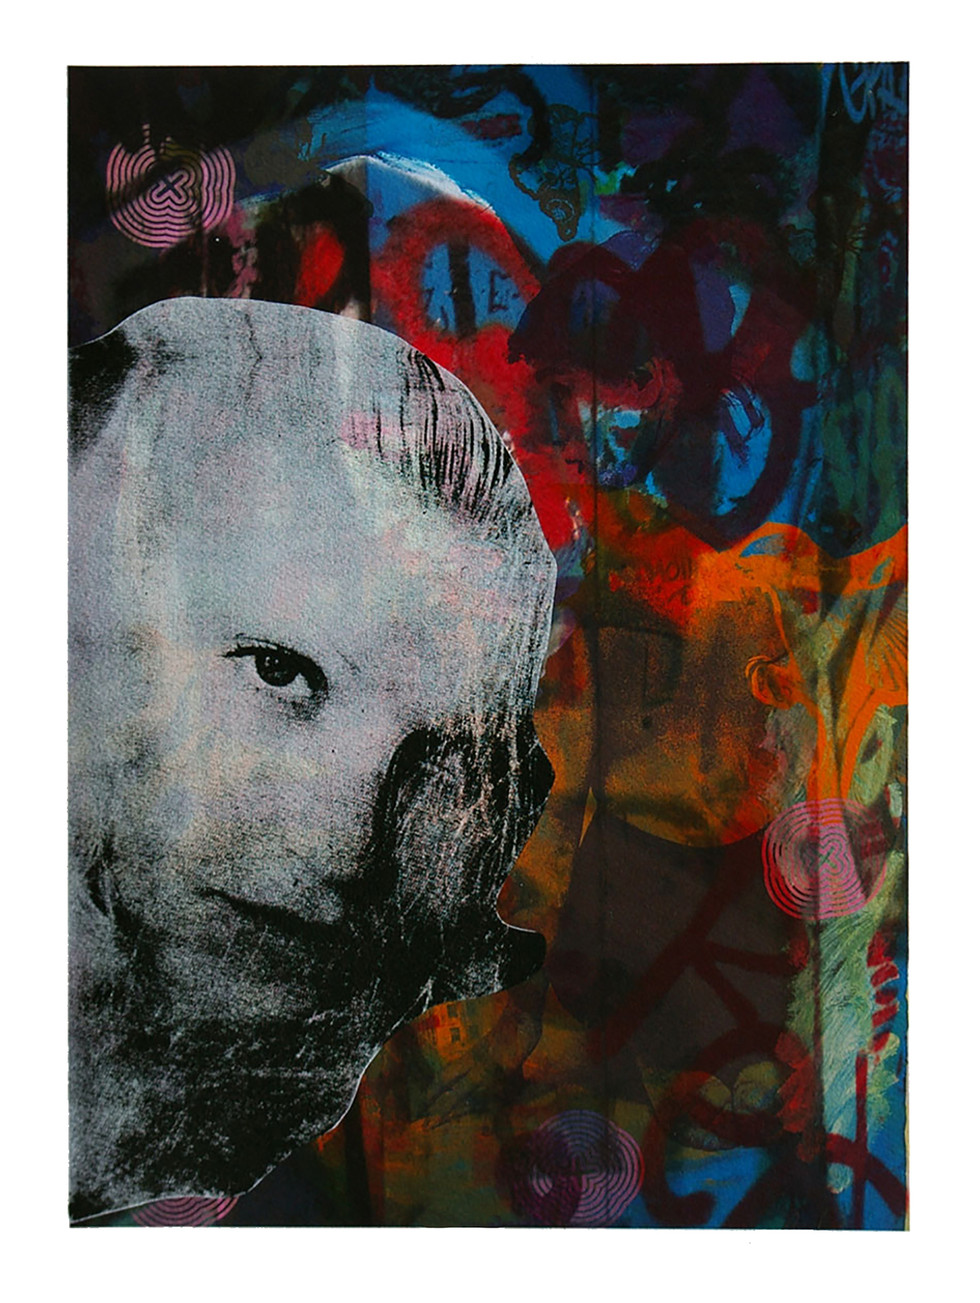 Jane Sampson 'Ghost' Digital print (background) with silkscreen 30 x 42cm personal project.